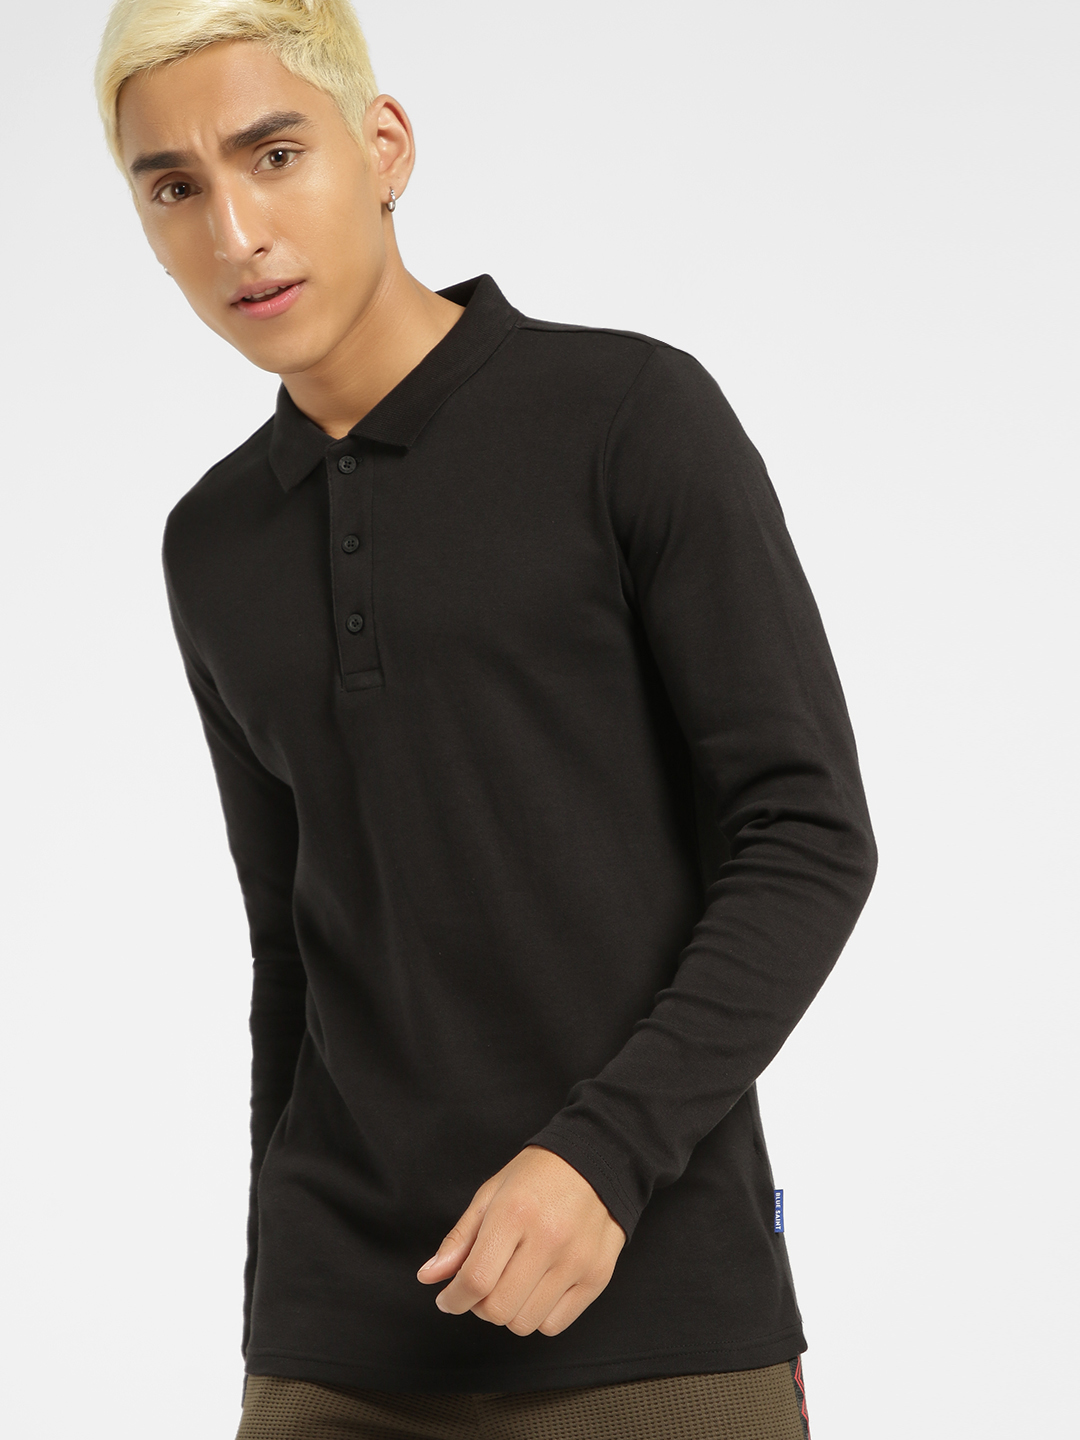 Blue Saint Black Long Sleeve Polo Shirt 1